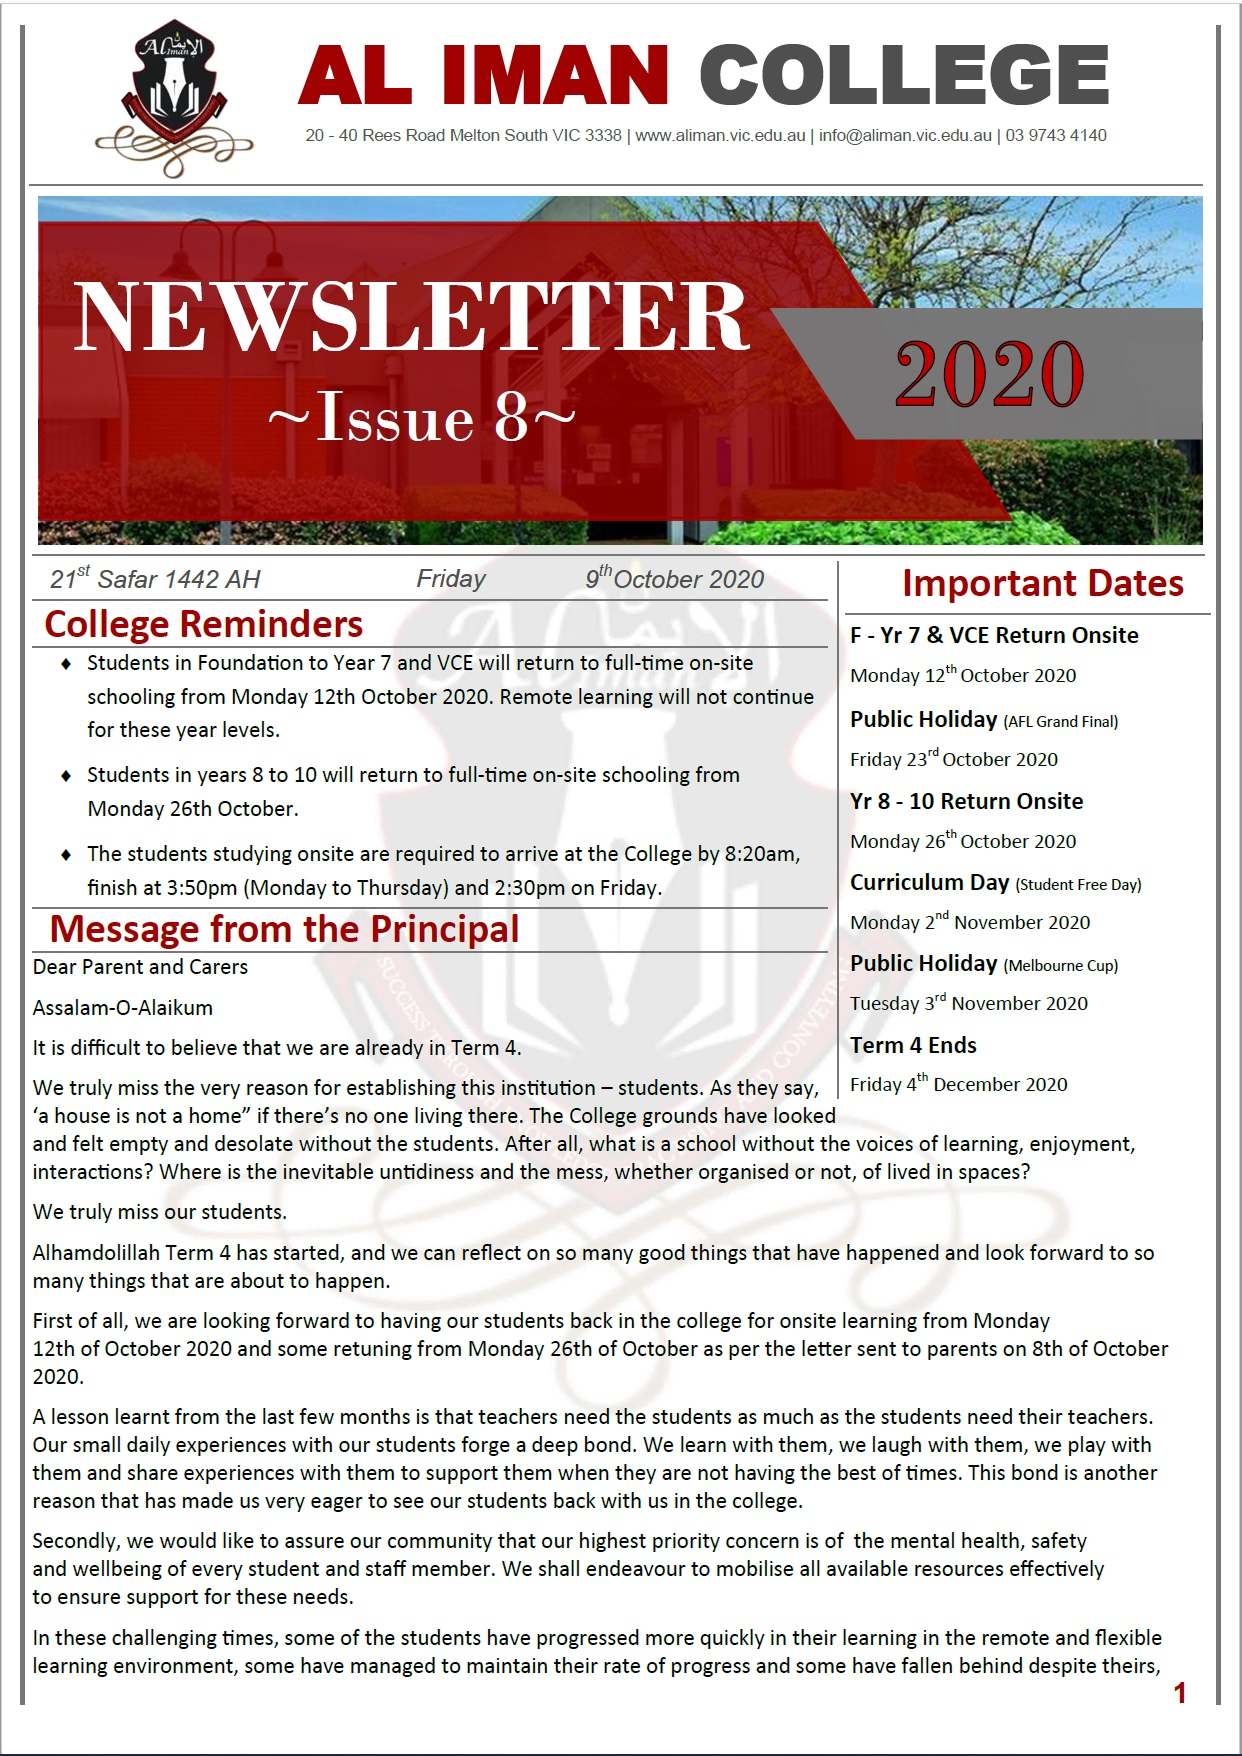 AIC Newsletter Issue 8